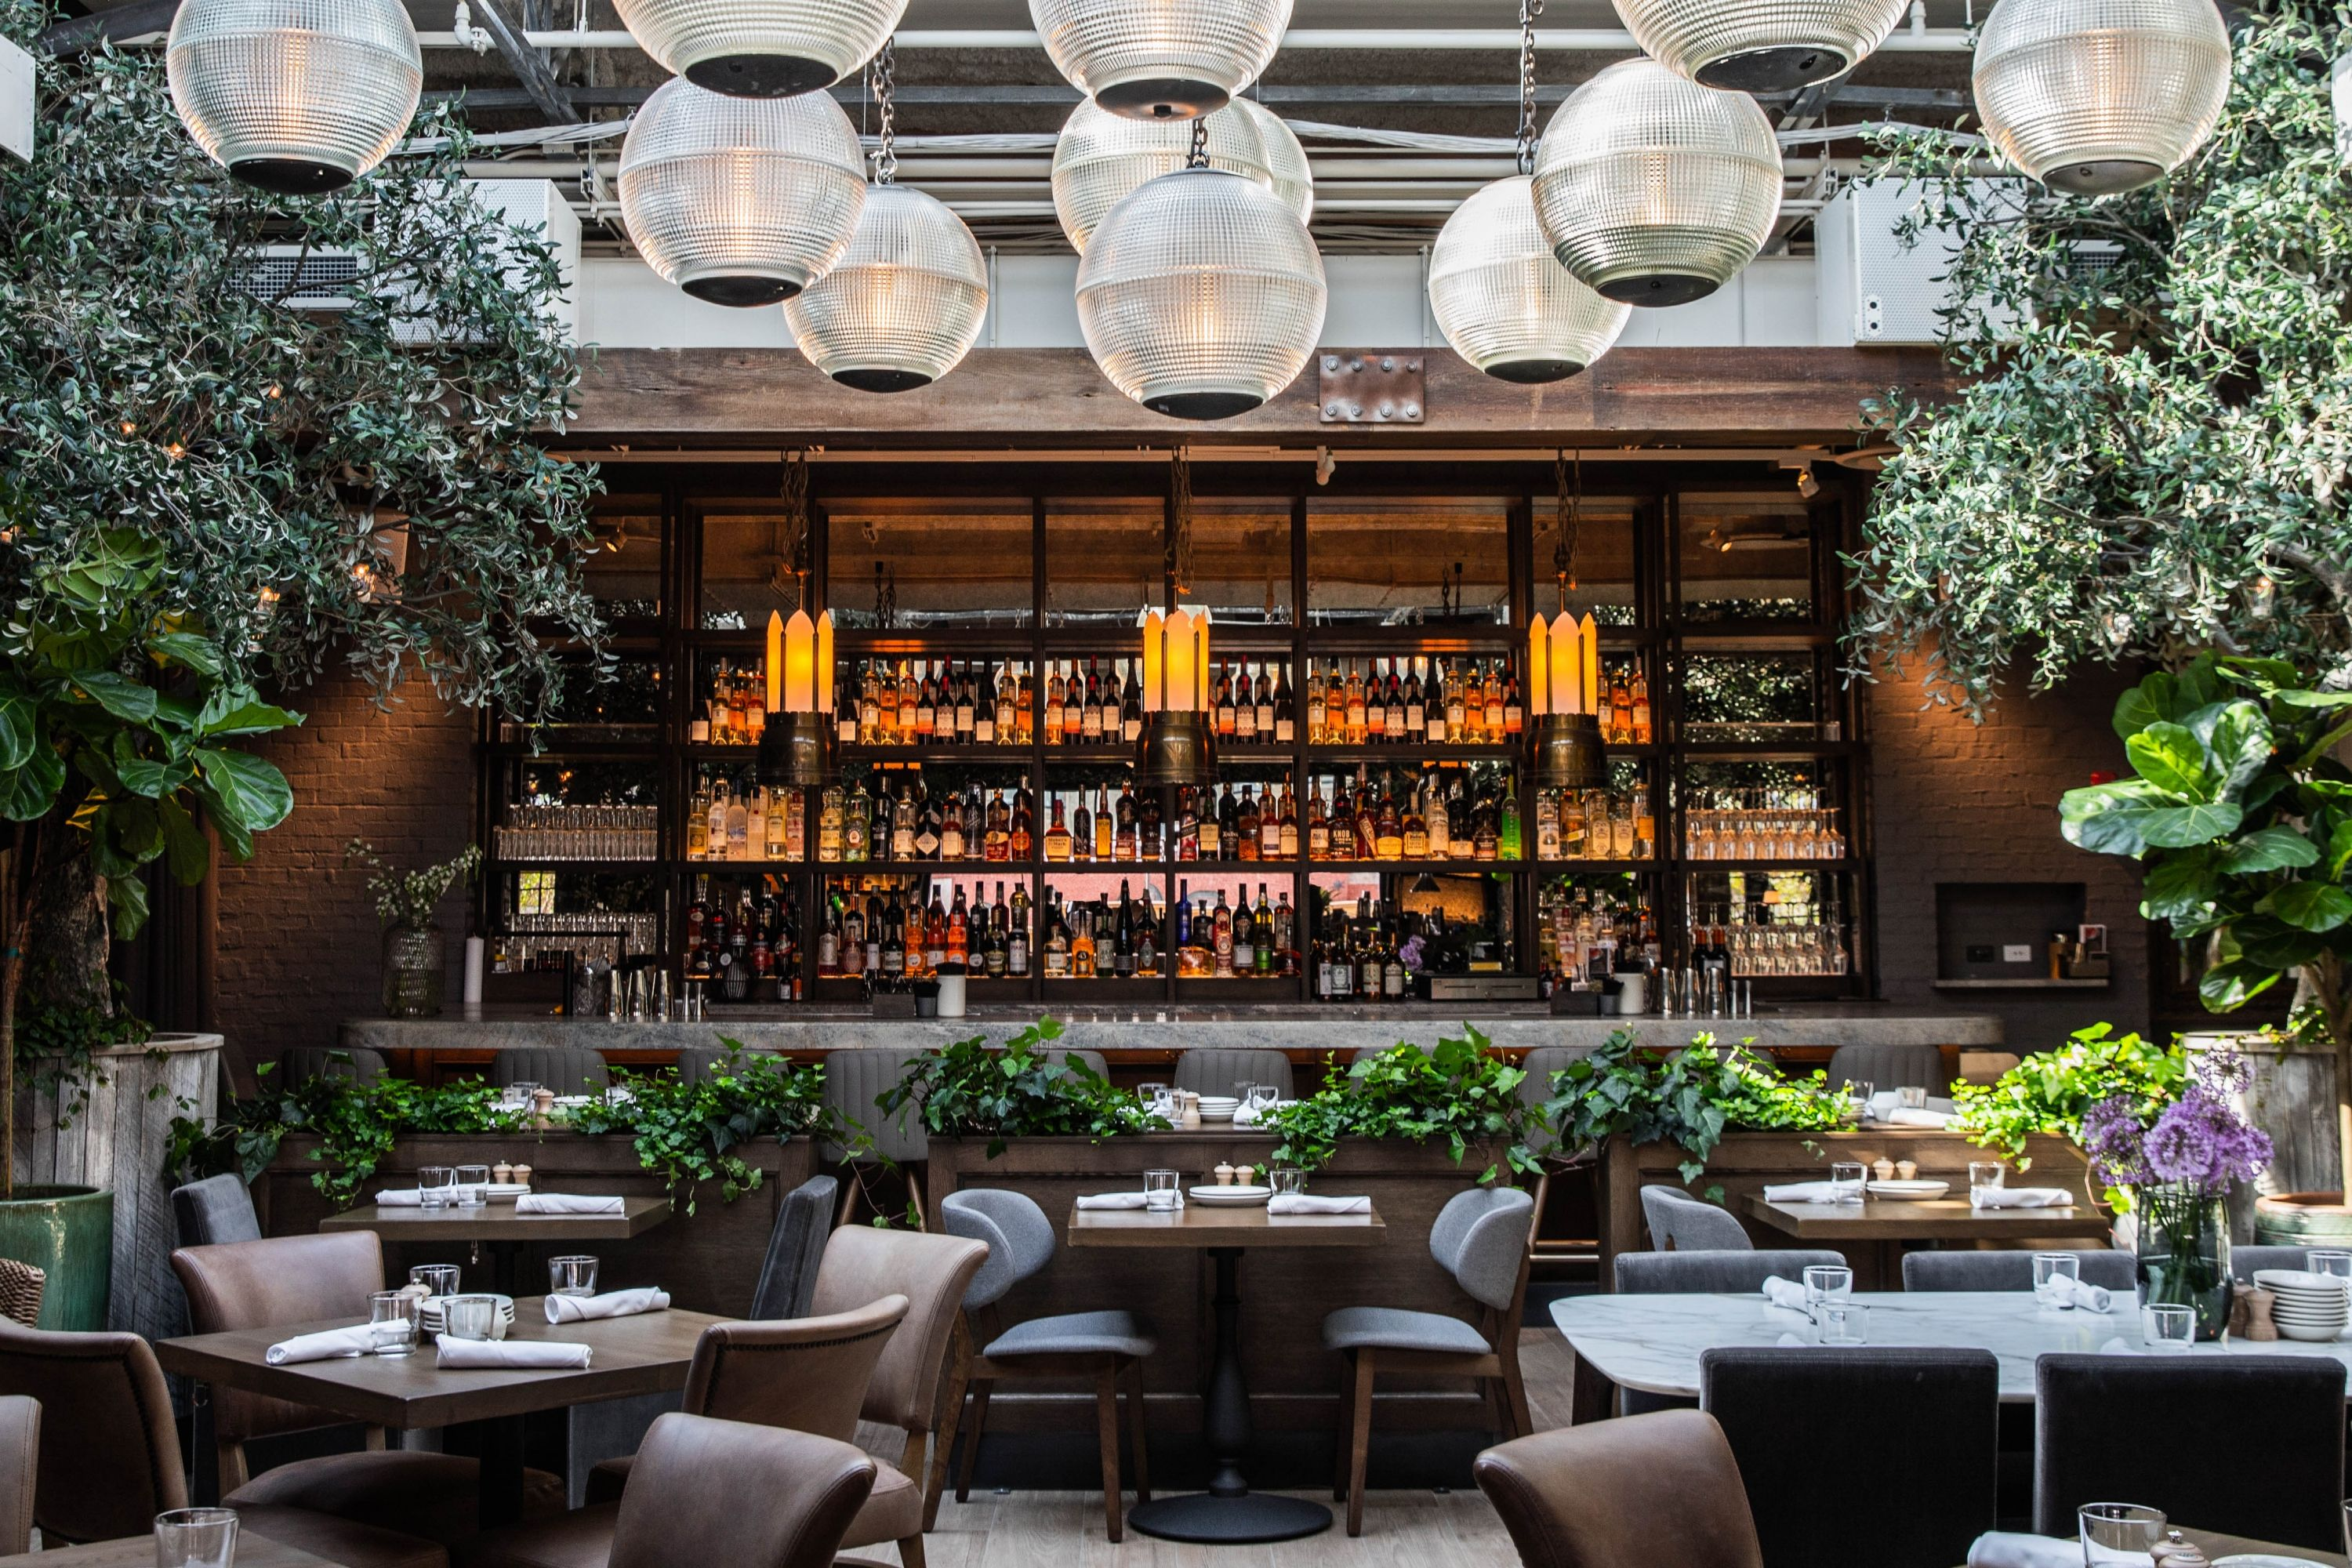 Parlor Pizza Google Search In 2020 Rooftop Restaurant Design Hotel Rooftop Bar Rooftop Bars Chicago